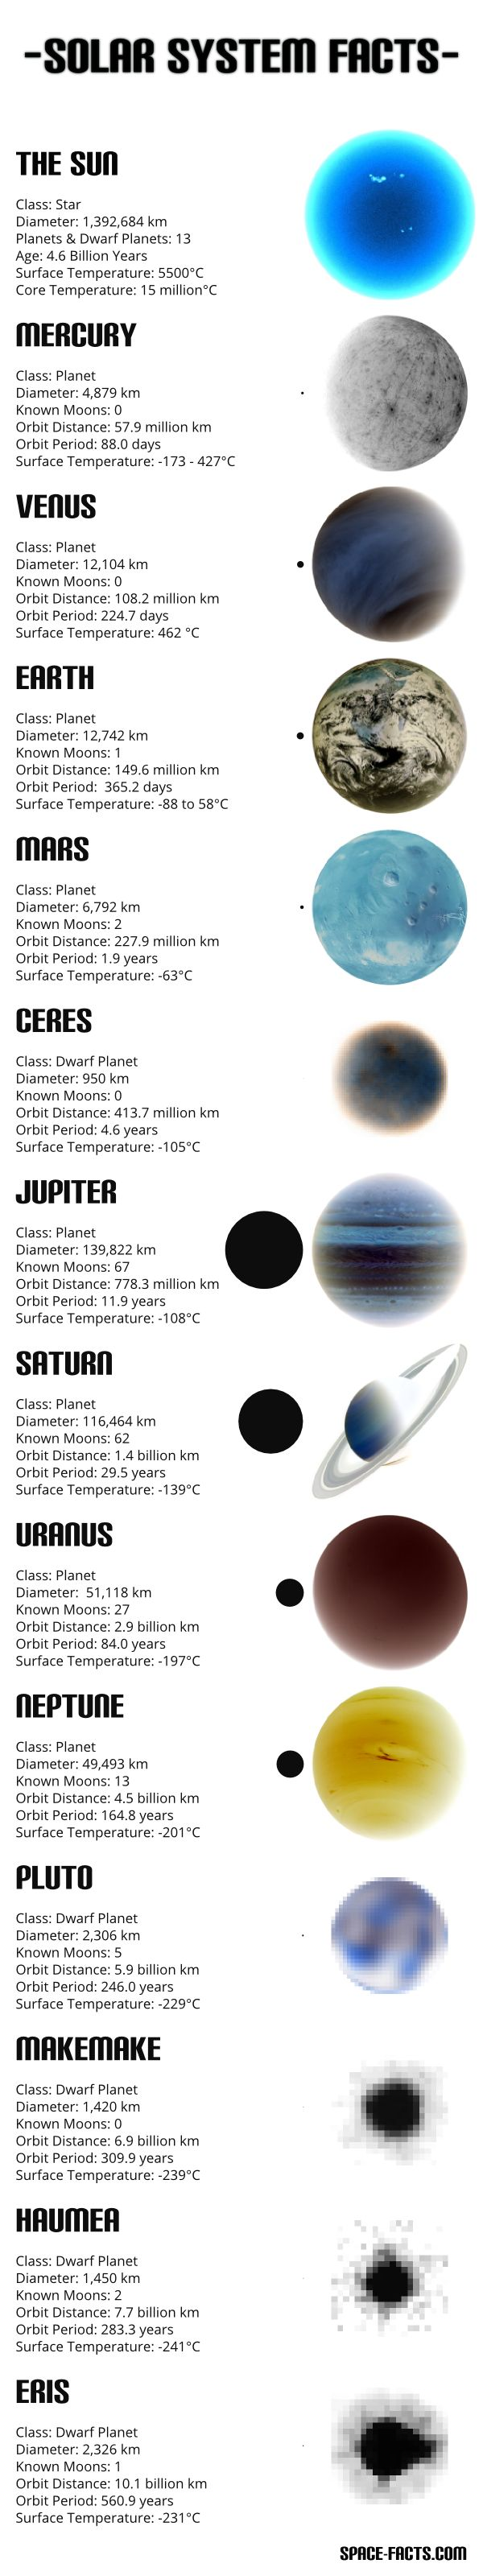 Solar System Information | Visual.ly